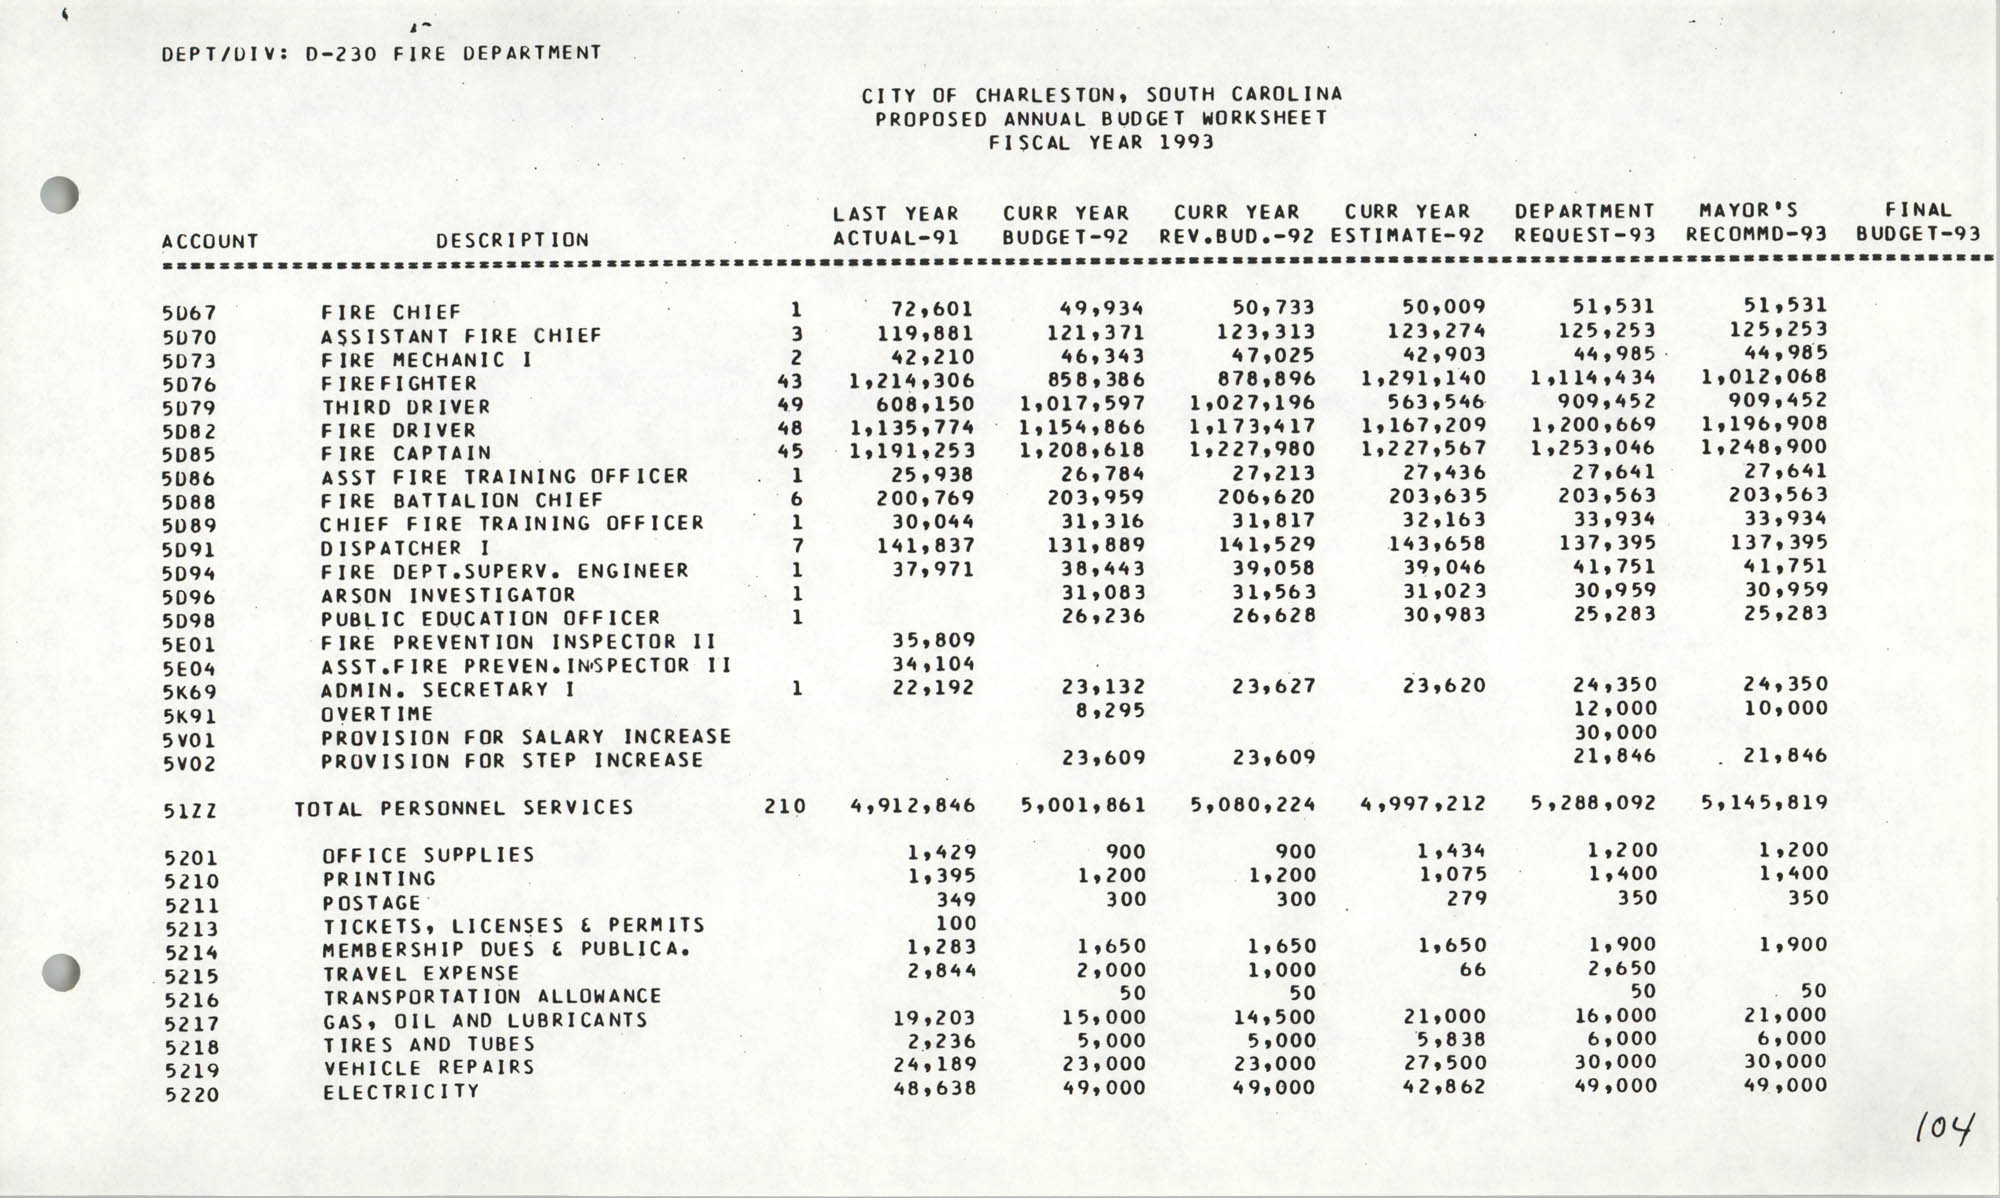 The City Council of Charleston, South Carolina, 1993 Budget, Page 104